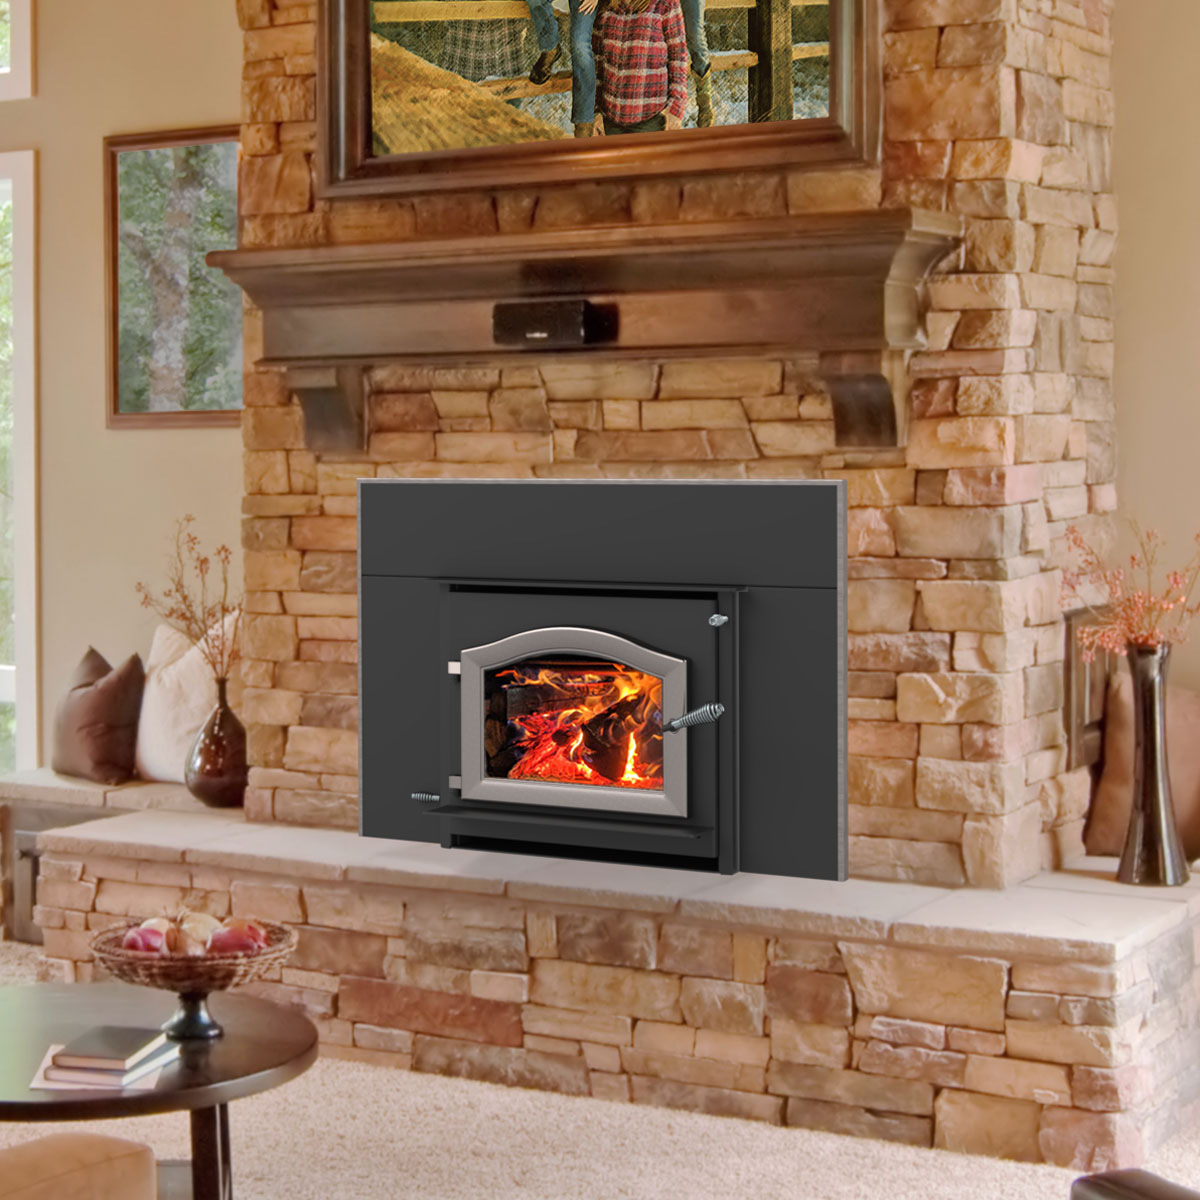 Kuma  Cascade LE wood fireplace insert, made in the USA